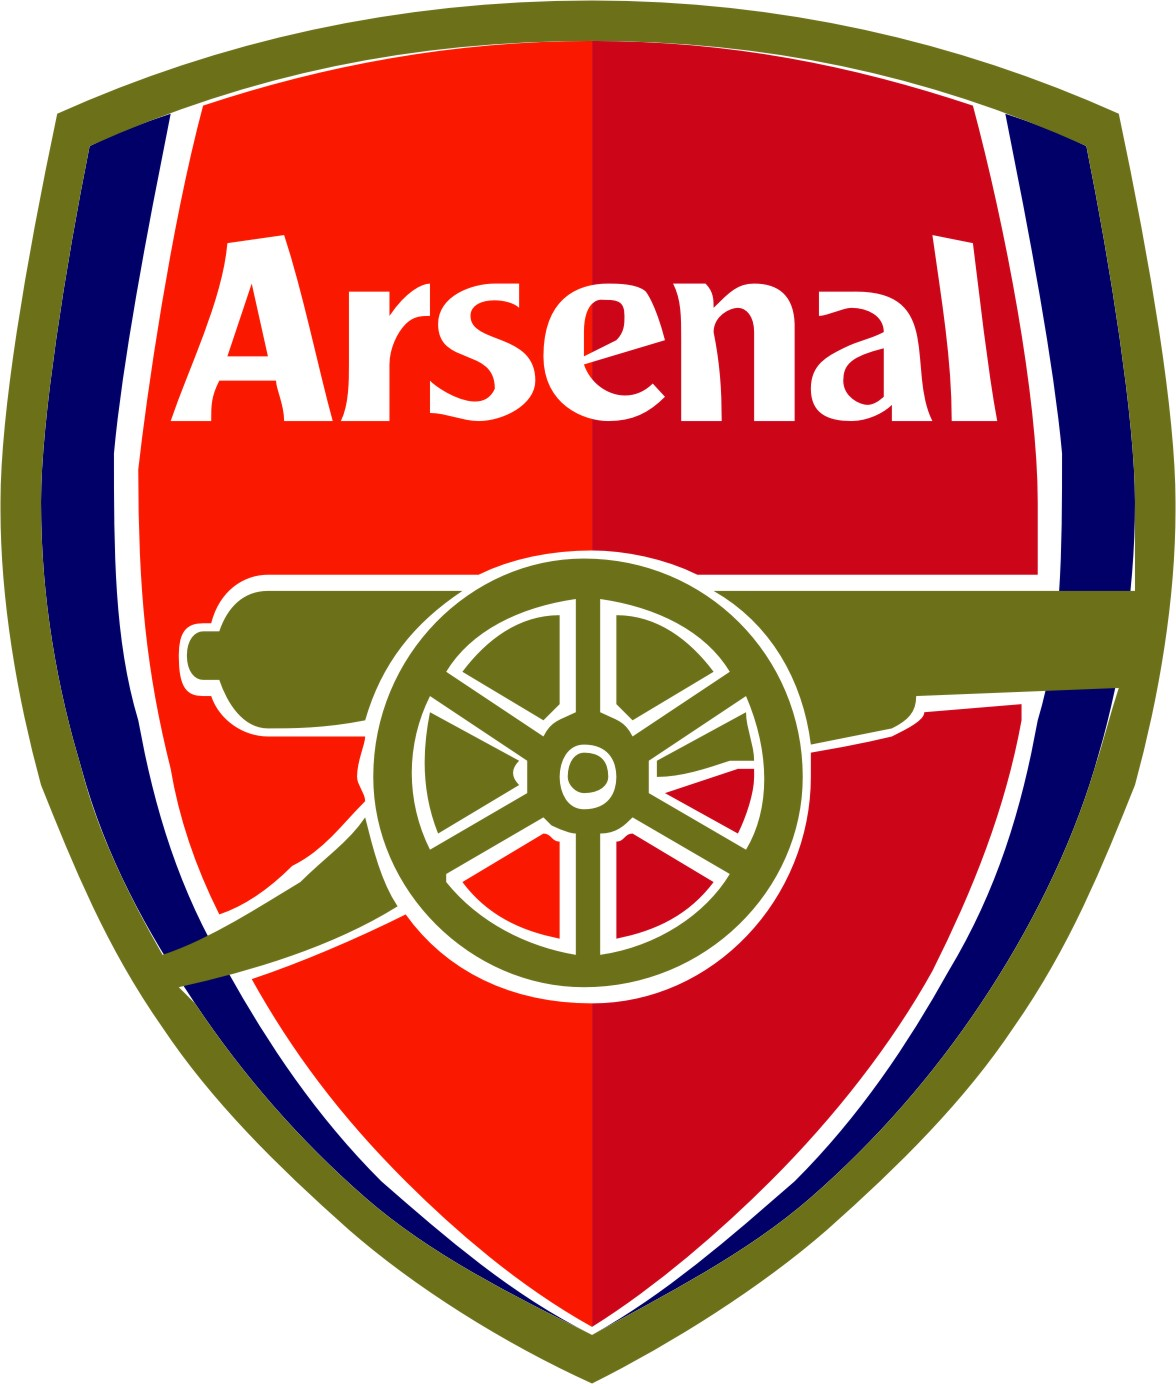 Arsenal FC Logo Wallpaper